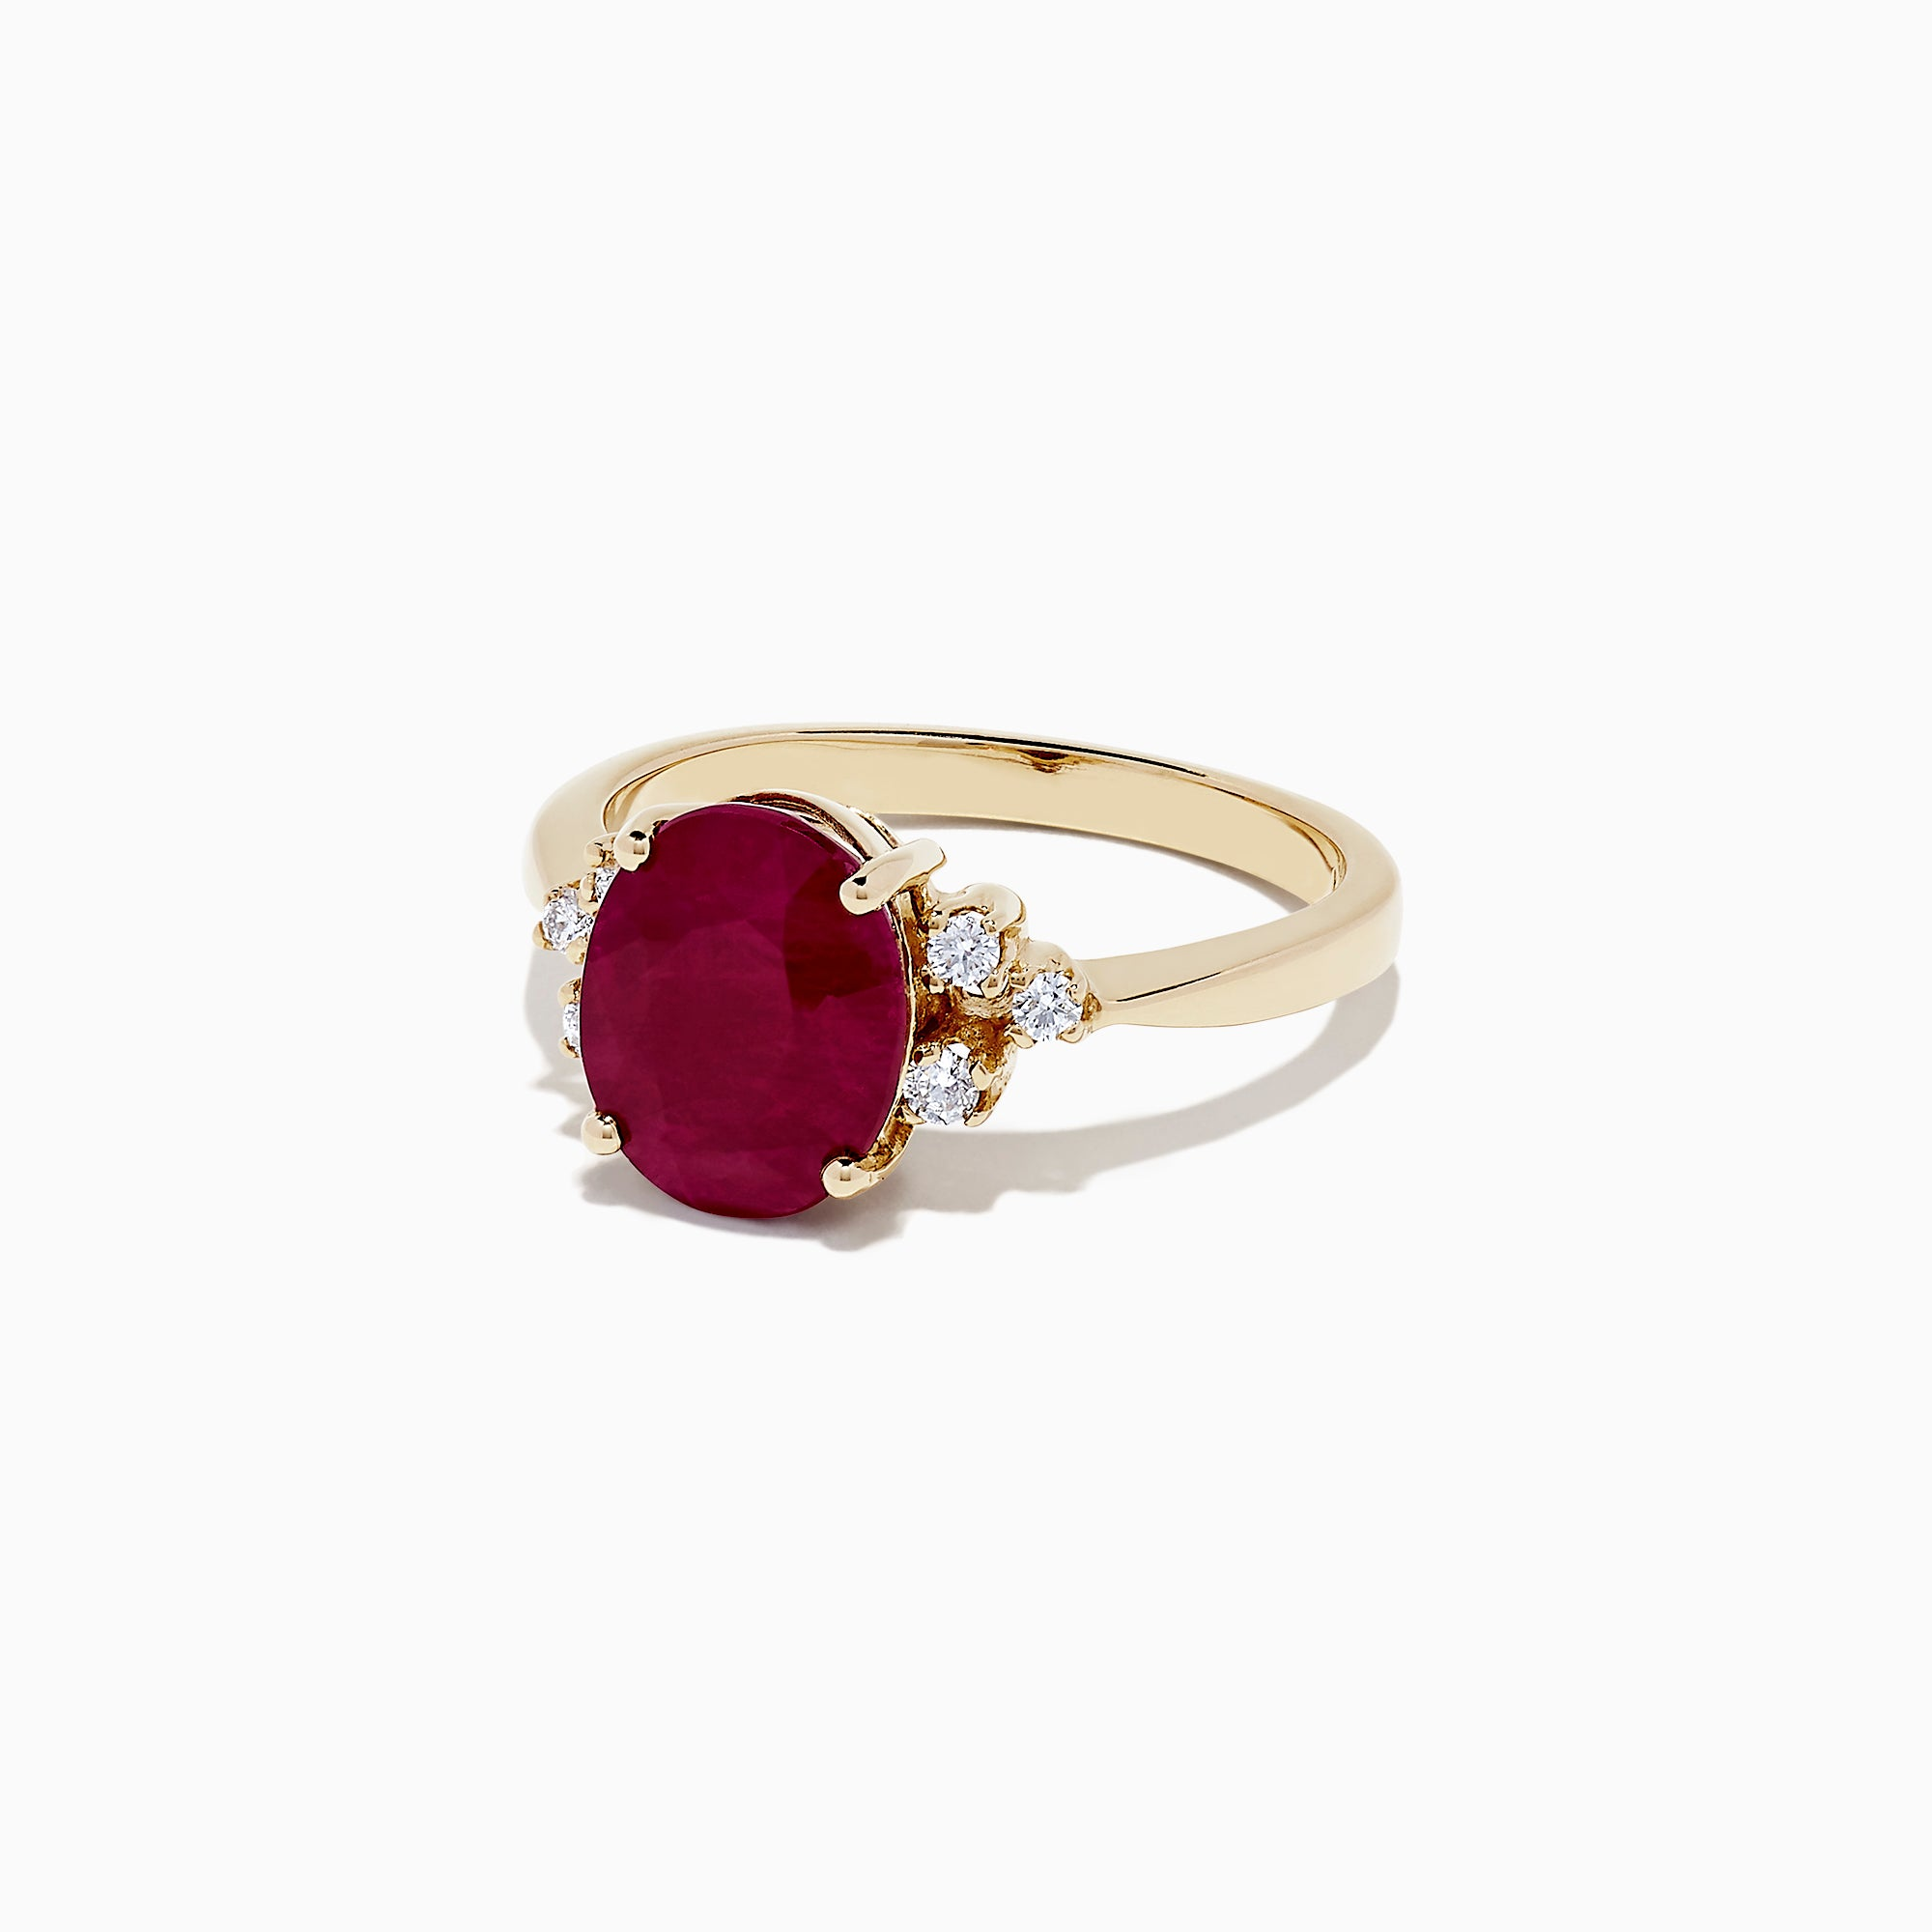 Effy Ruby Royale 14K Yellow Gold Ruby and Diamond Ring, 3.67 TCW